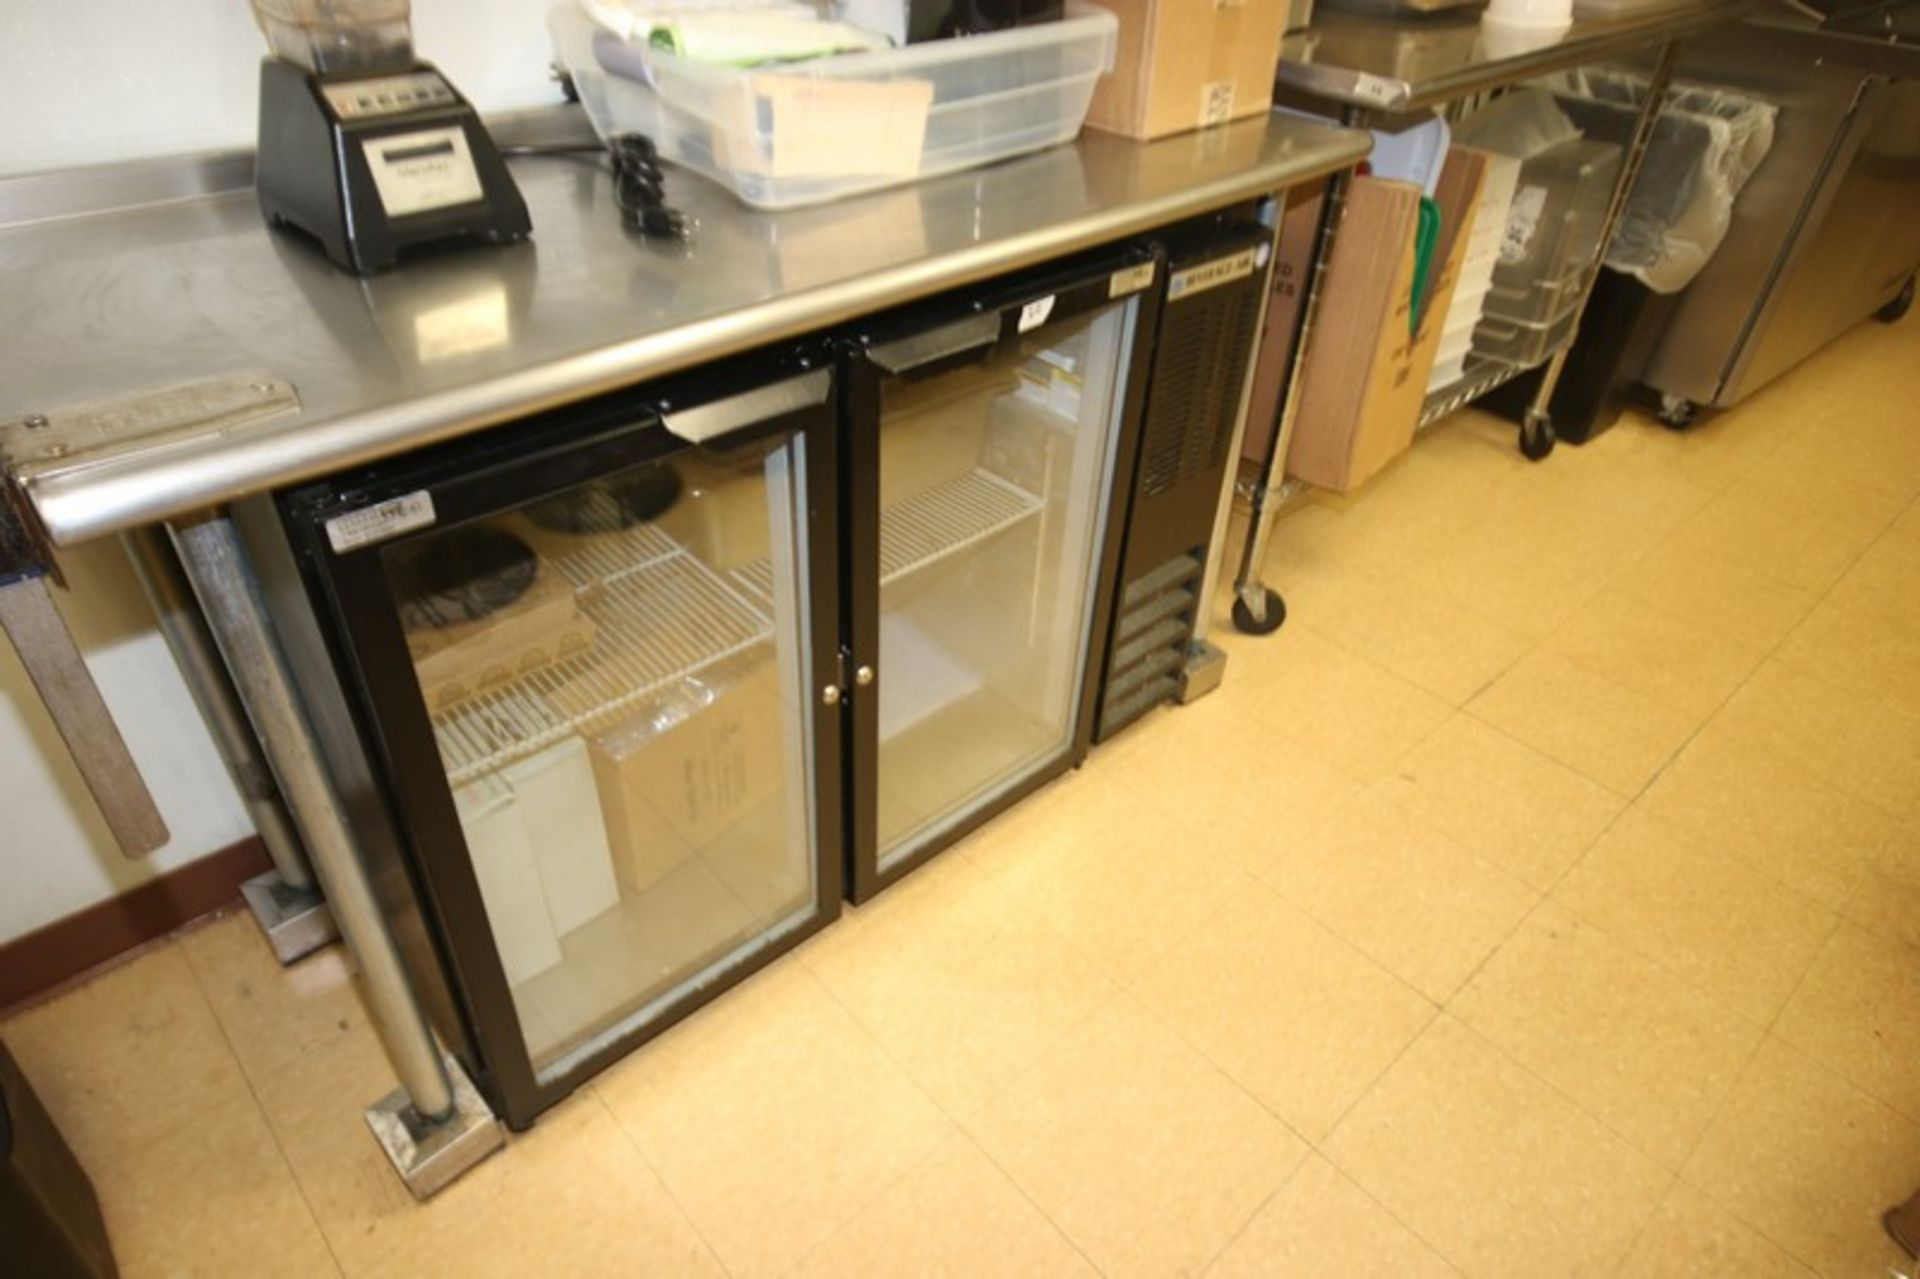 """Beverage-Air 2-Door Refrigerator, with Glass Faced Refrigeration Doors, Overall Dims.: Aprox. 48"""" - Image 2 of 2"""